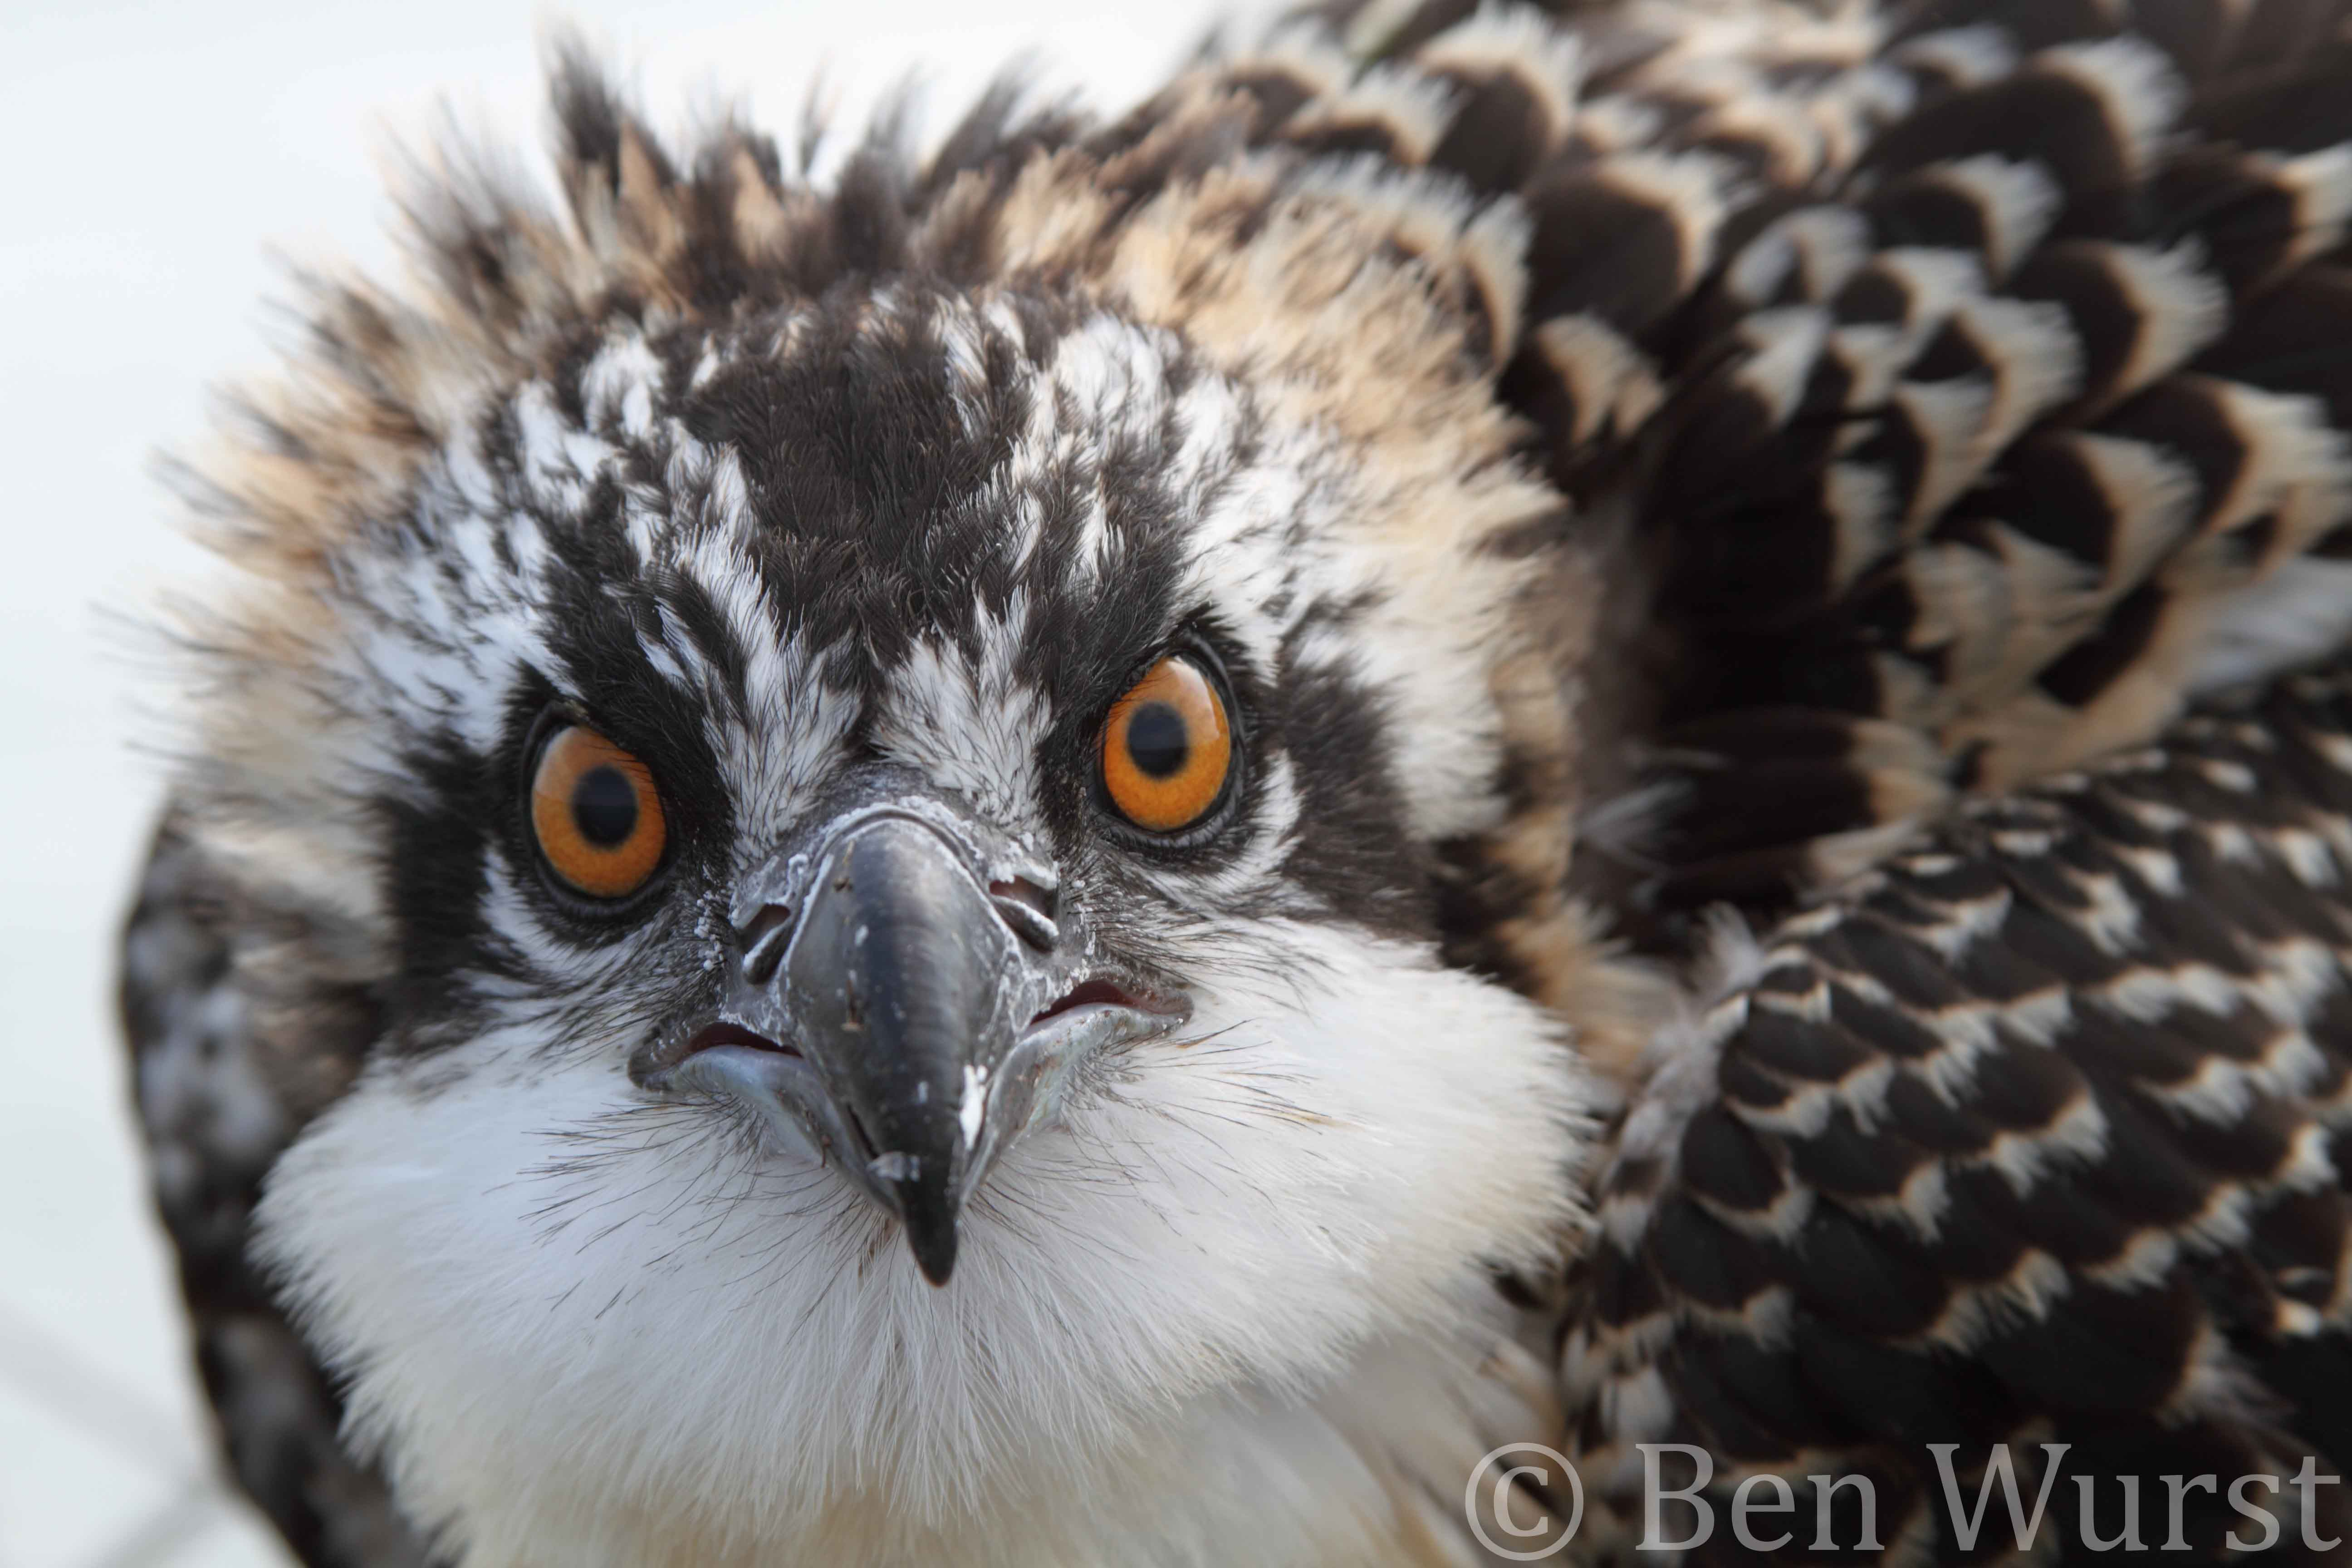 A juvenile osprey stares me down as I prepare to place a leg band on it for future tracking.